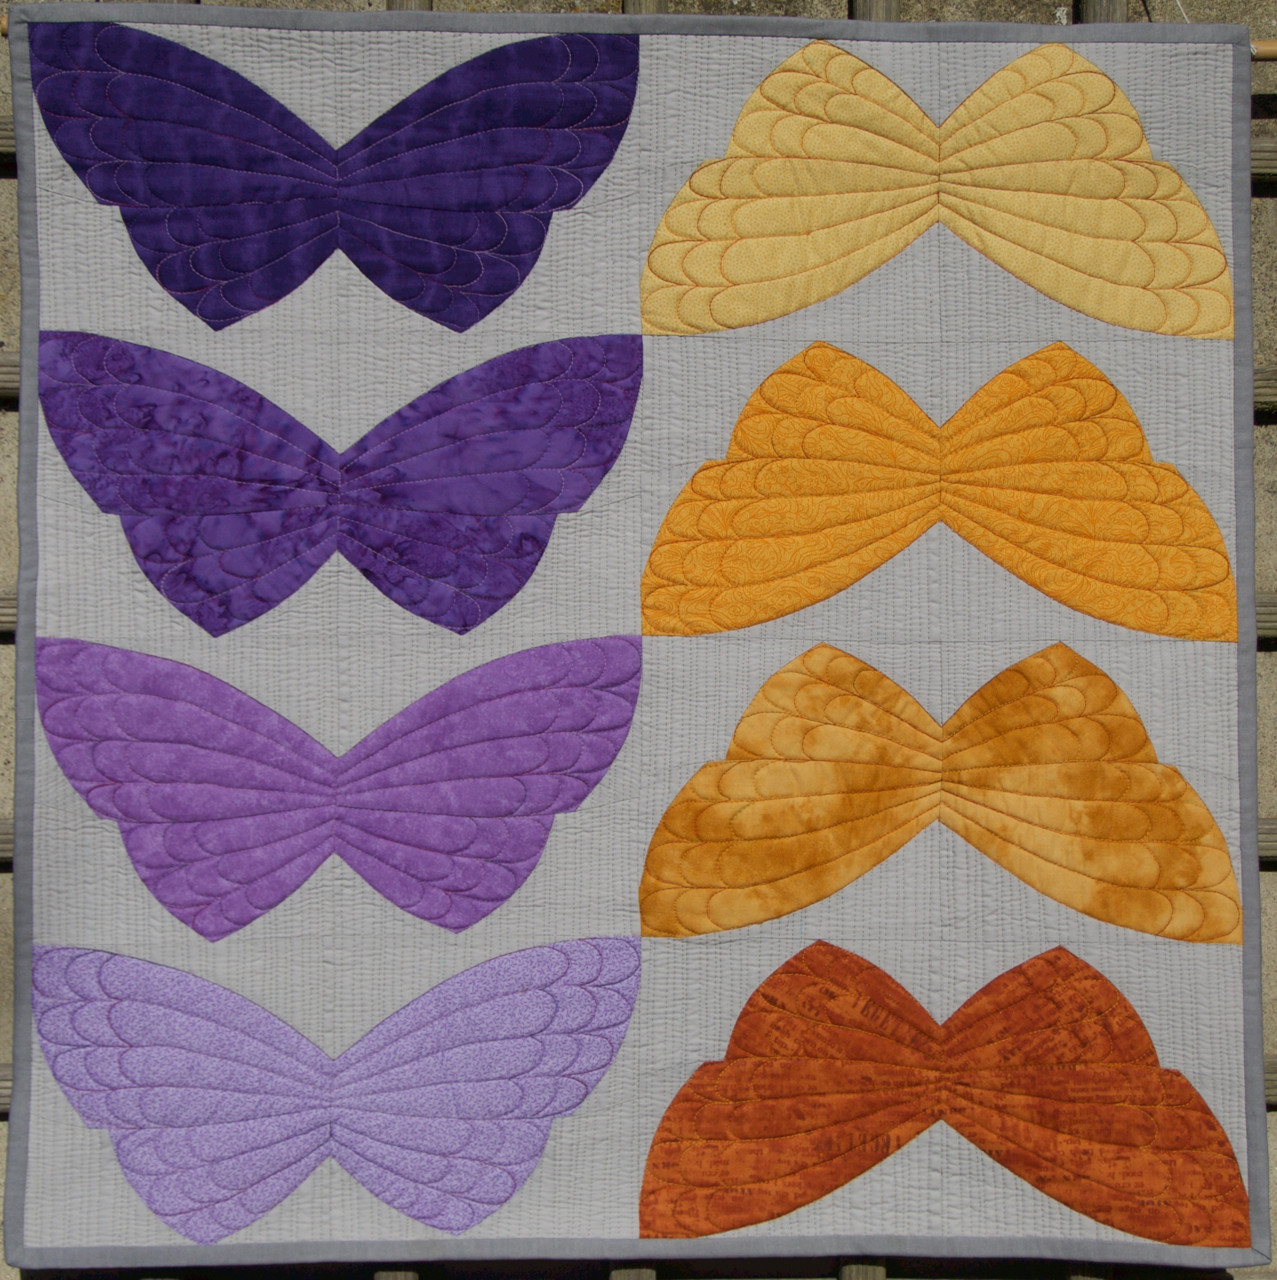 Butterfly Pattern Elegant Quilt Art by Olena Pugachova Curve Pieced butterfly Block Of Brilliant 42 Photos butterfly Pattern